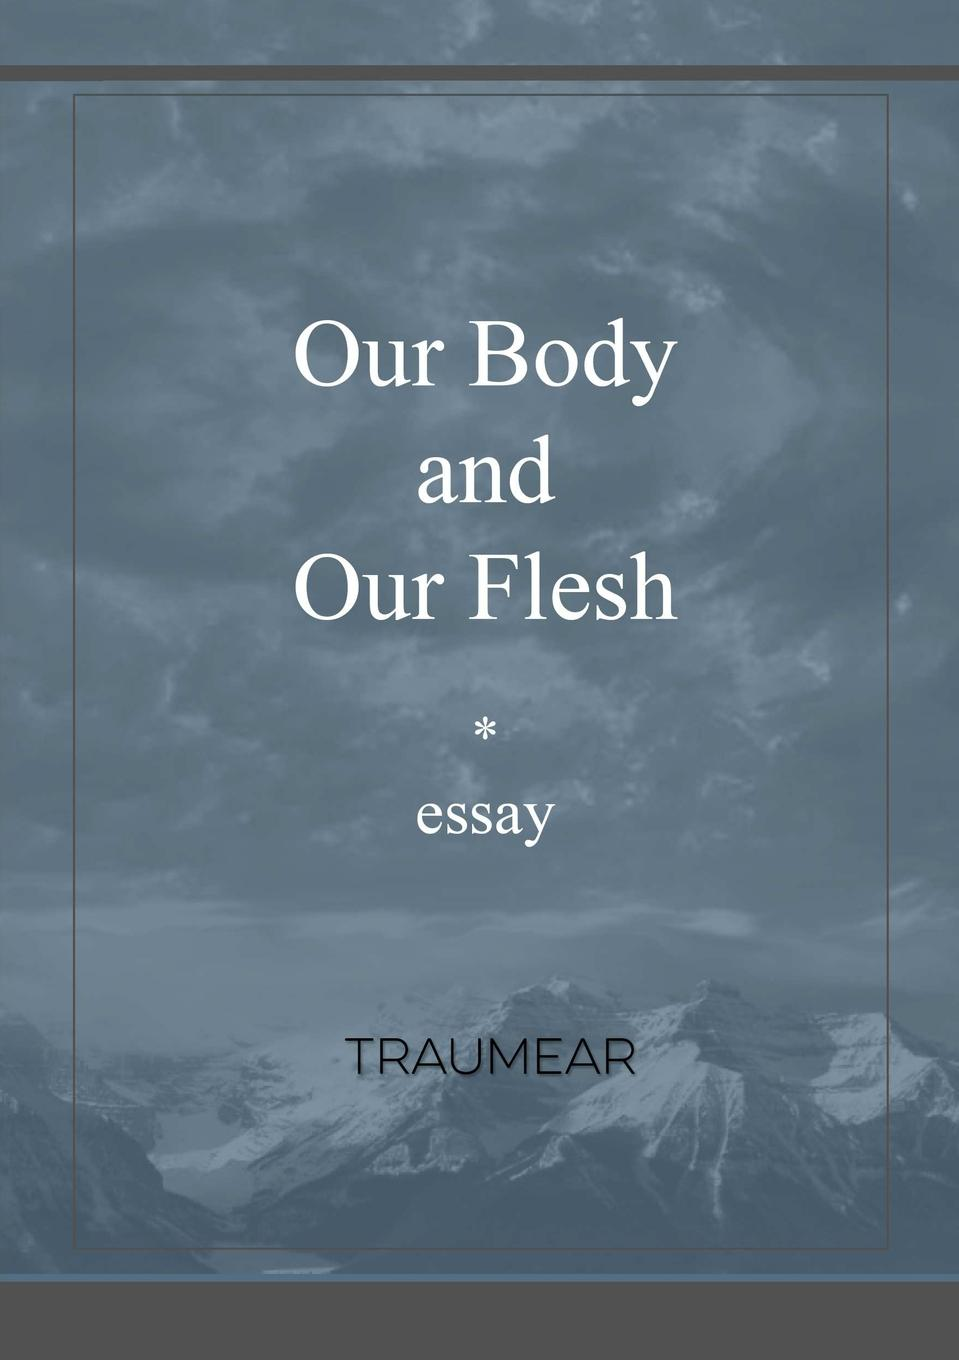 Traumear Our Body and our Flesh flesh stone